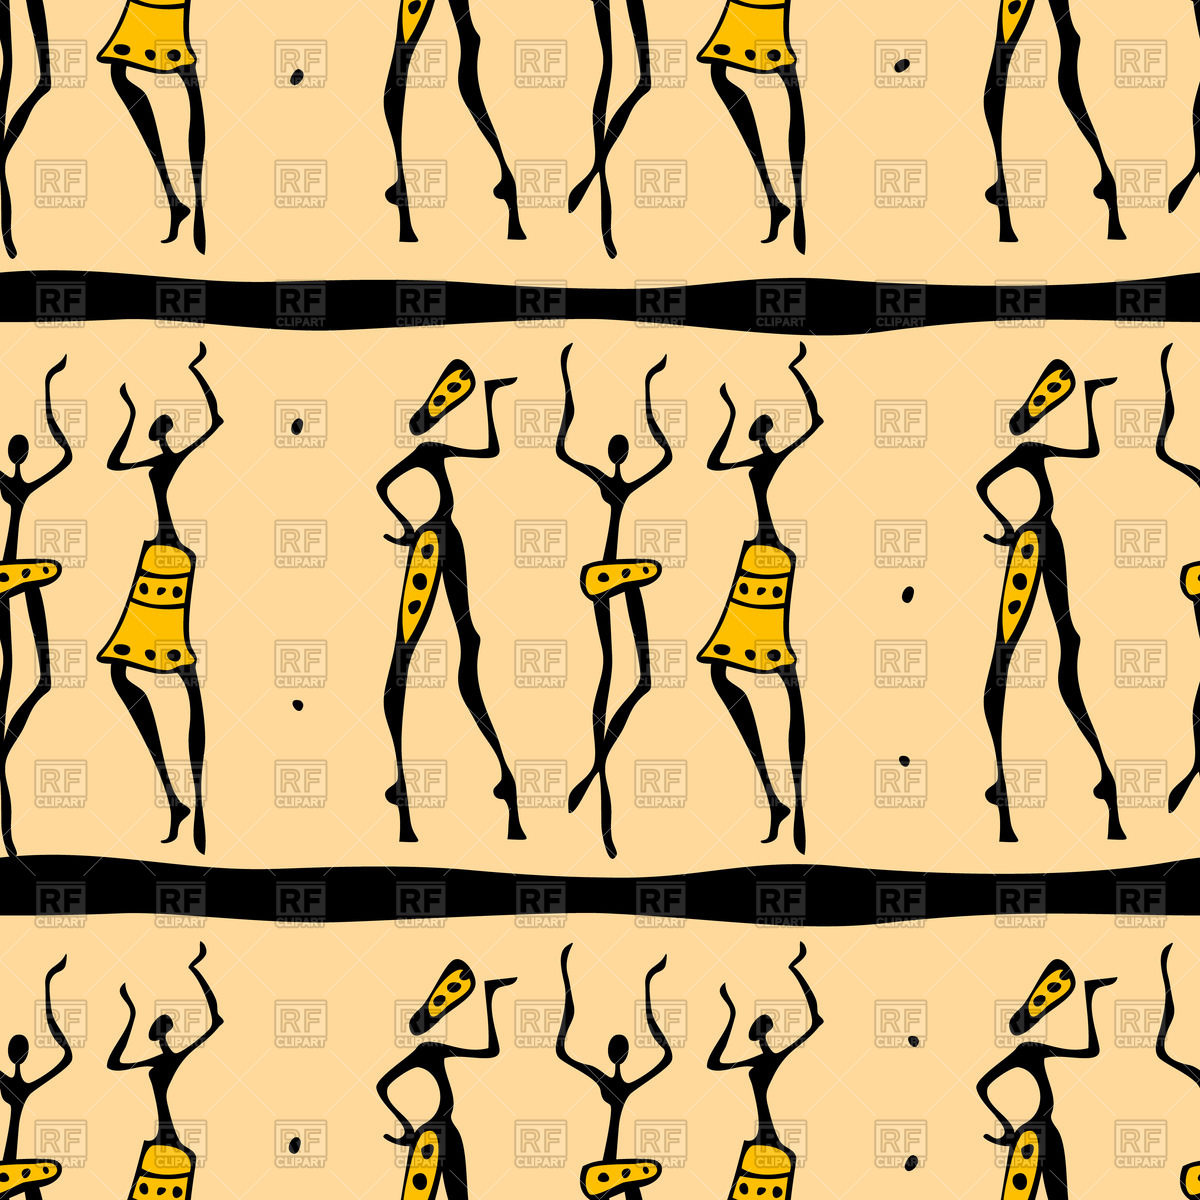 1200x1200 Seamless African Dancers Pattern Vector Image Vector Artwork Of